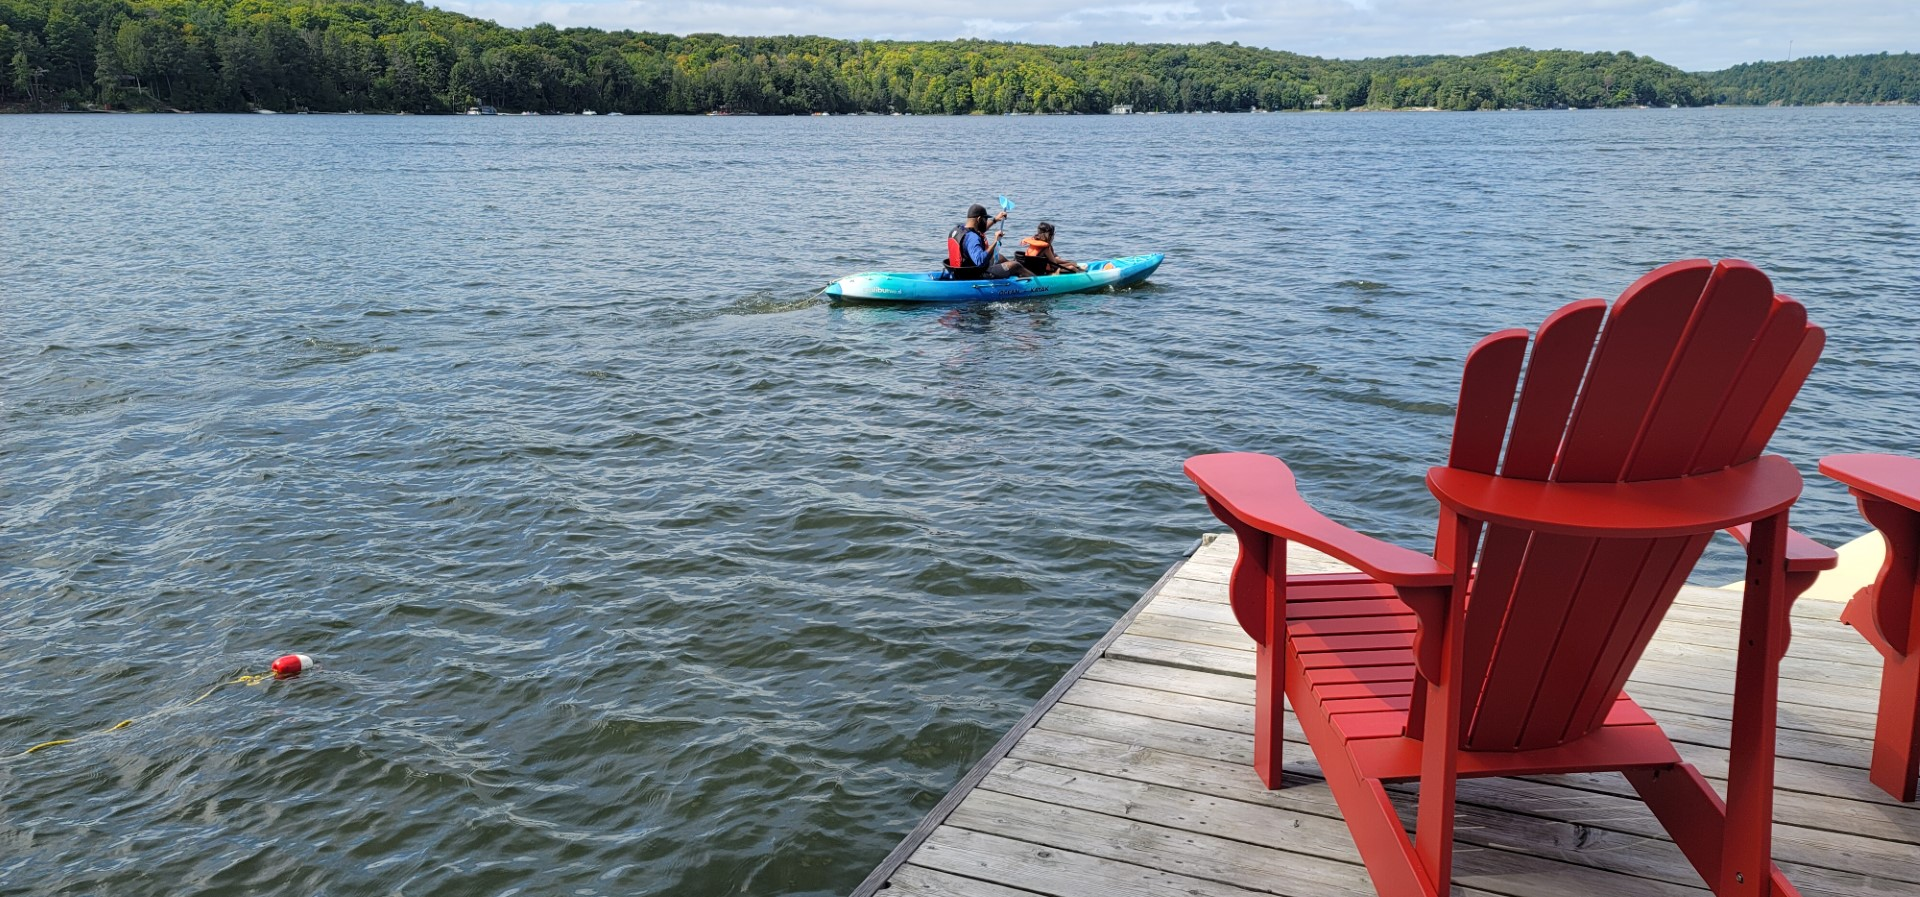 two people on kayak in the water with trees and dock